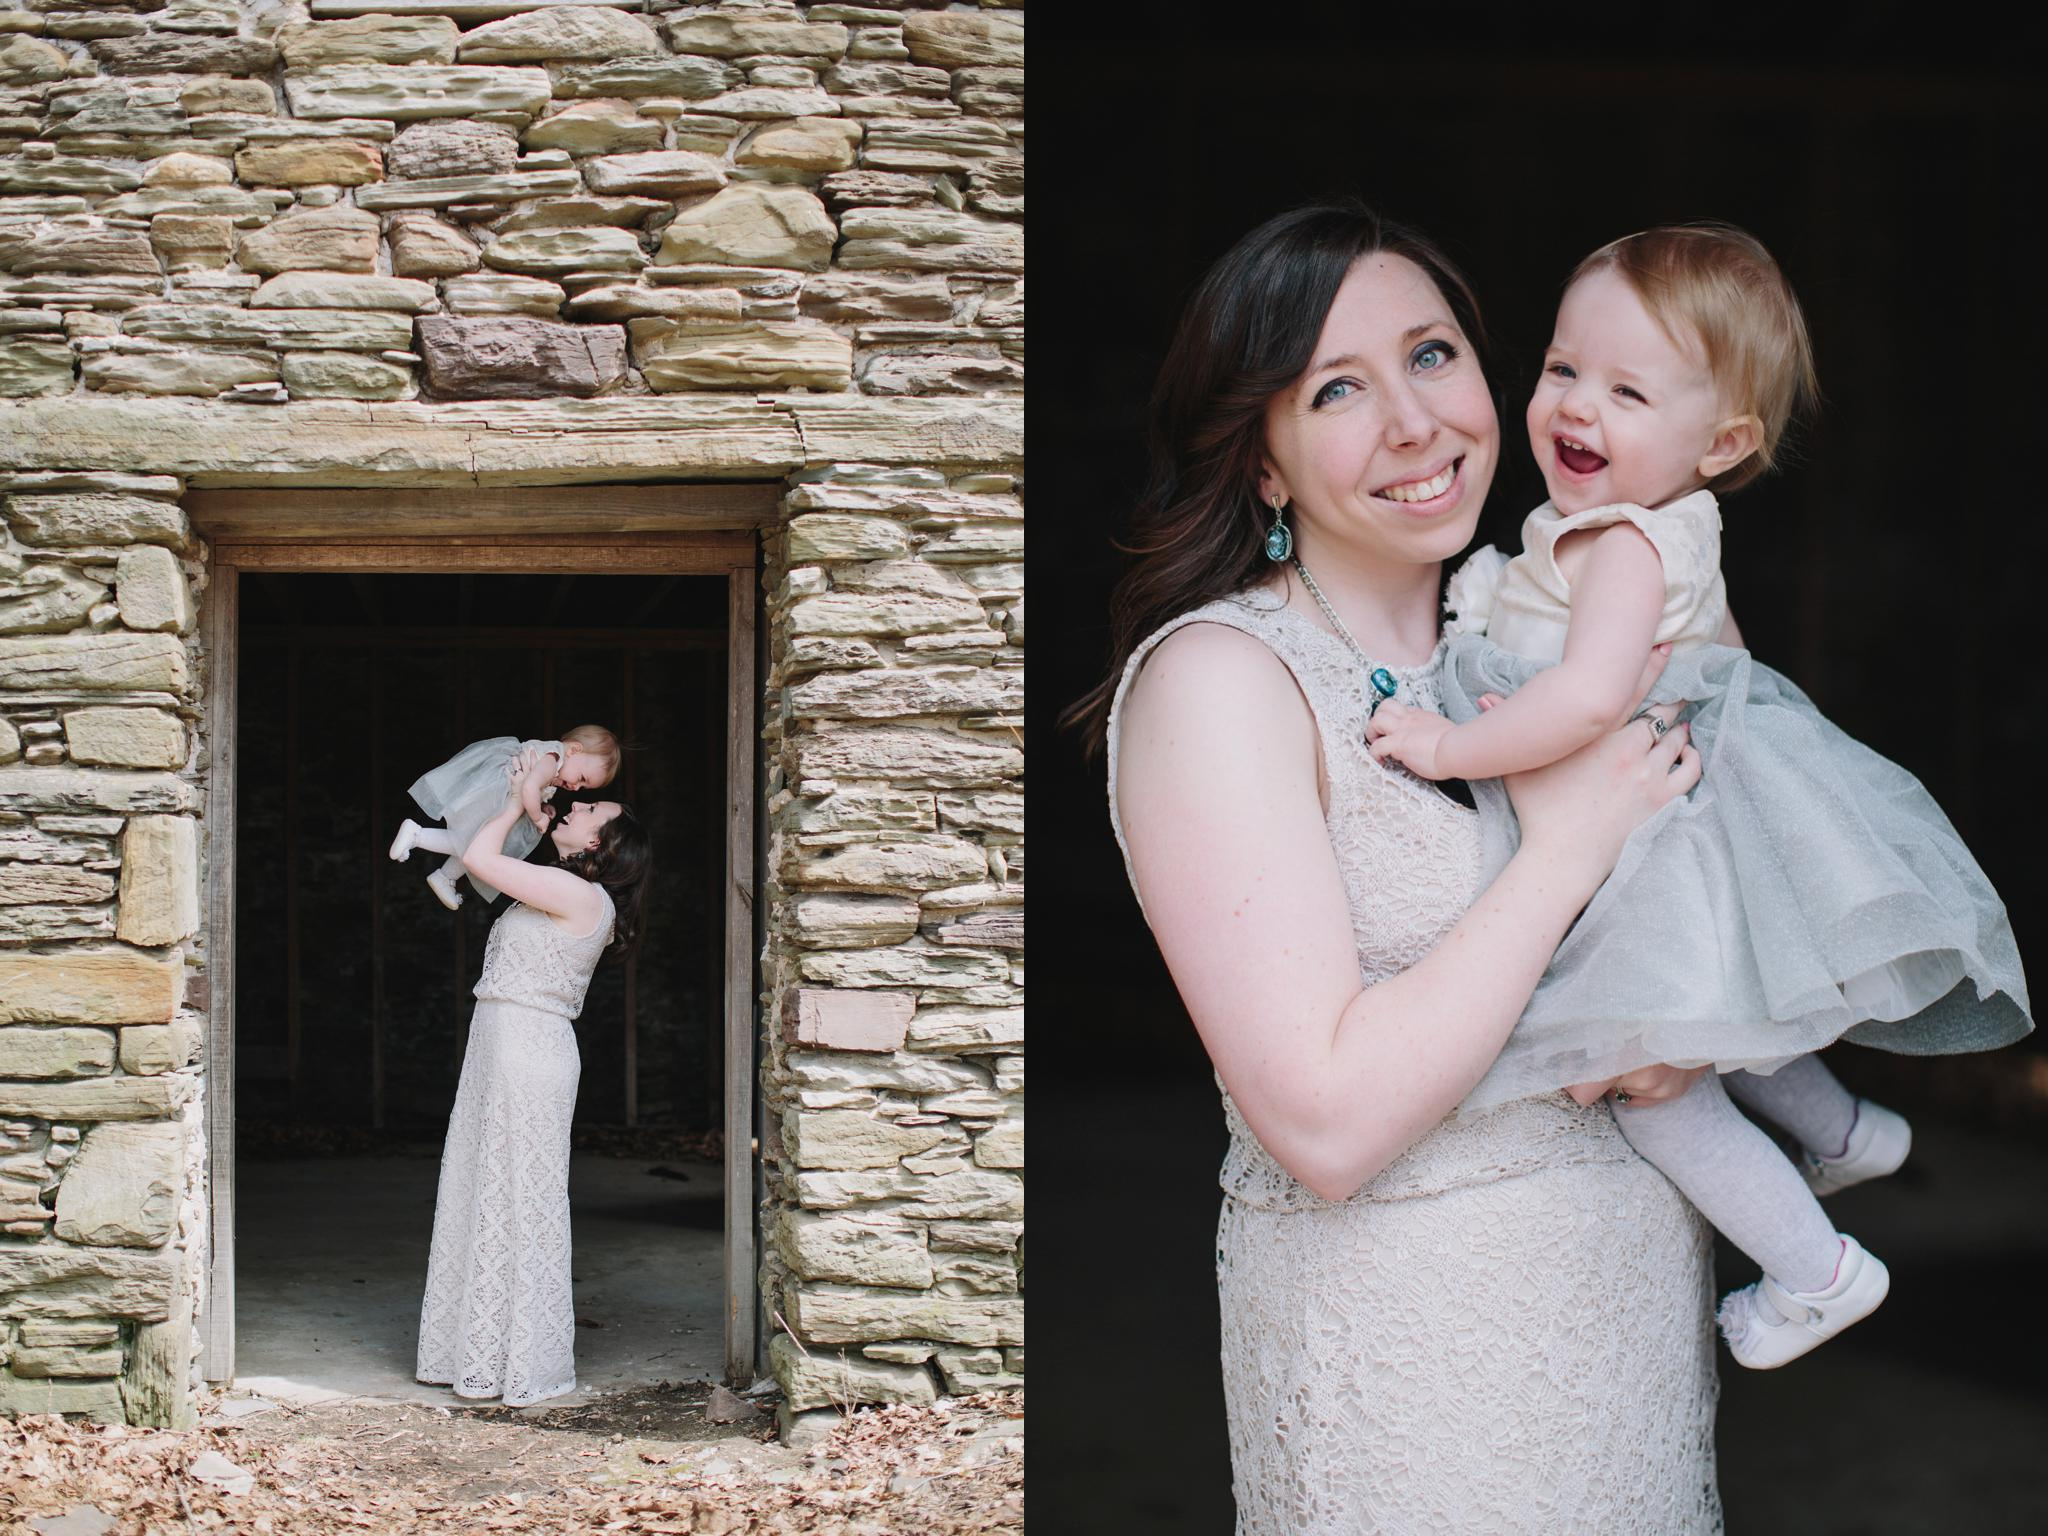 Family_Session_Tierney_Cyanne_Photography_5266.jpg